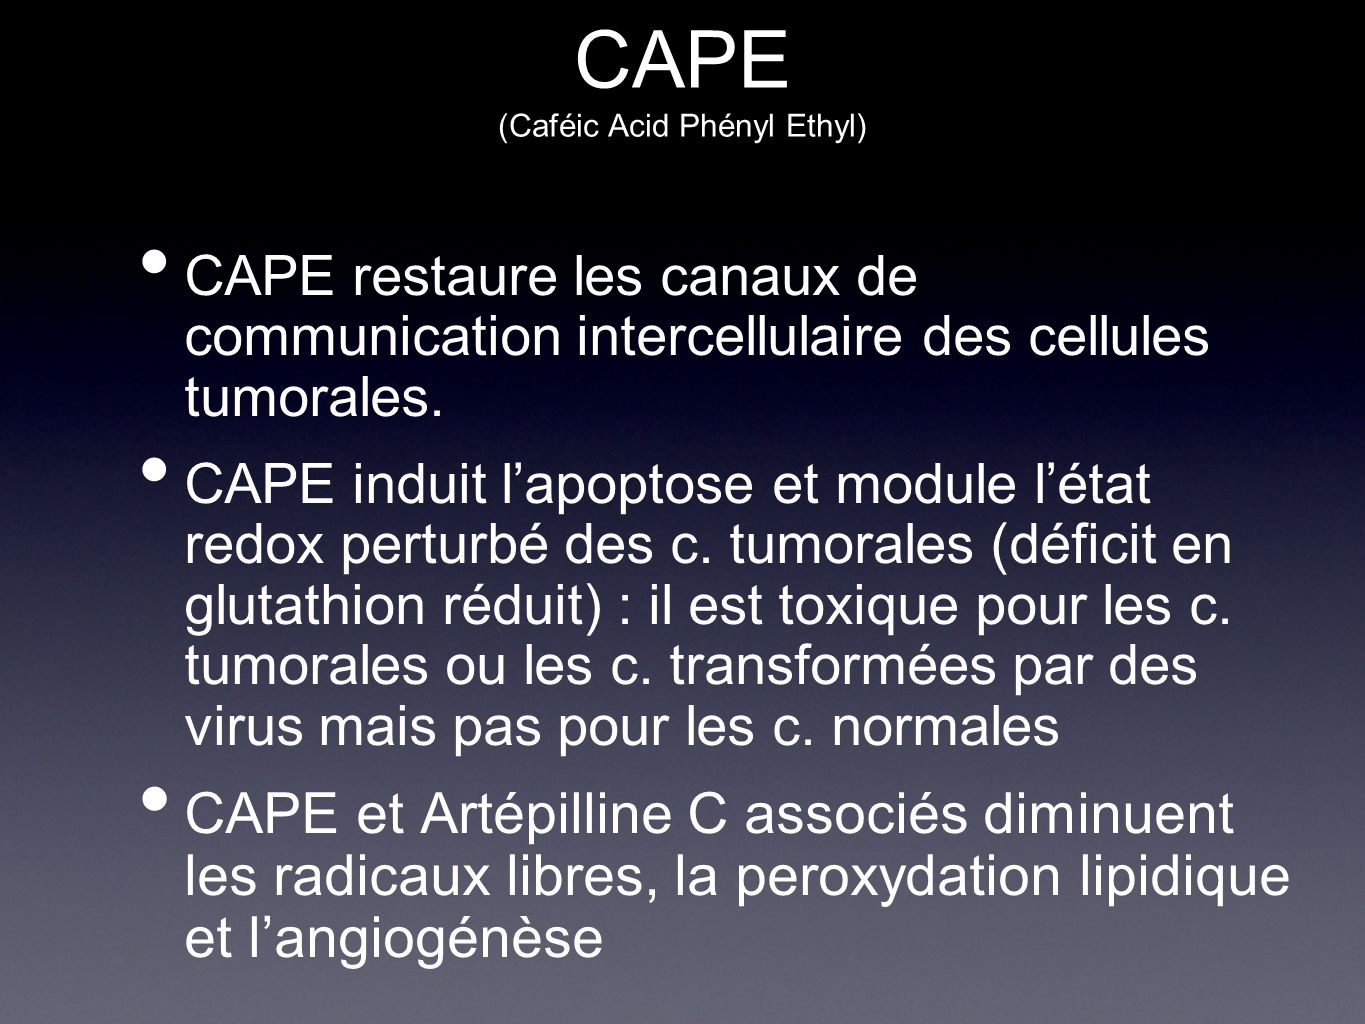 CAPE (Caféic Acid Phényl Ethyl)